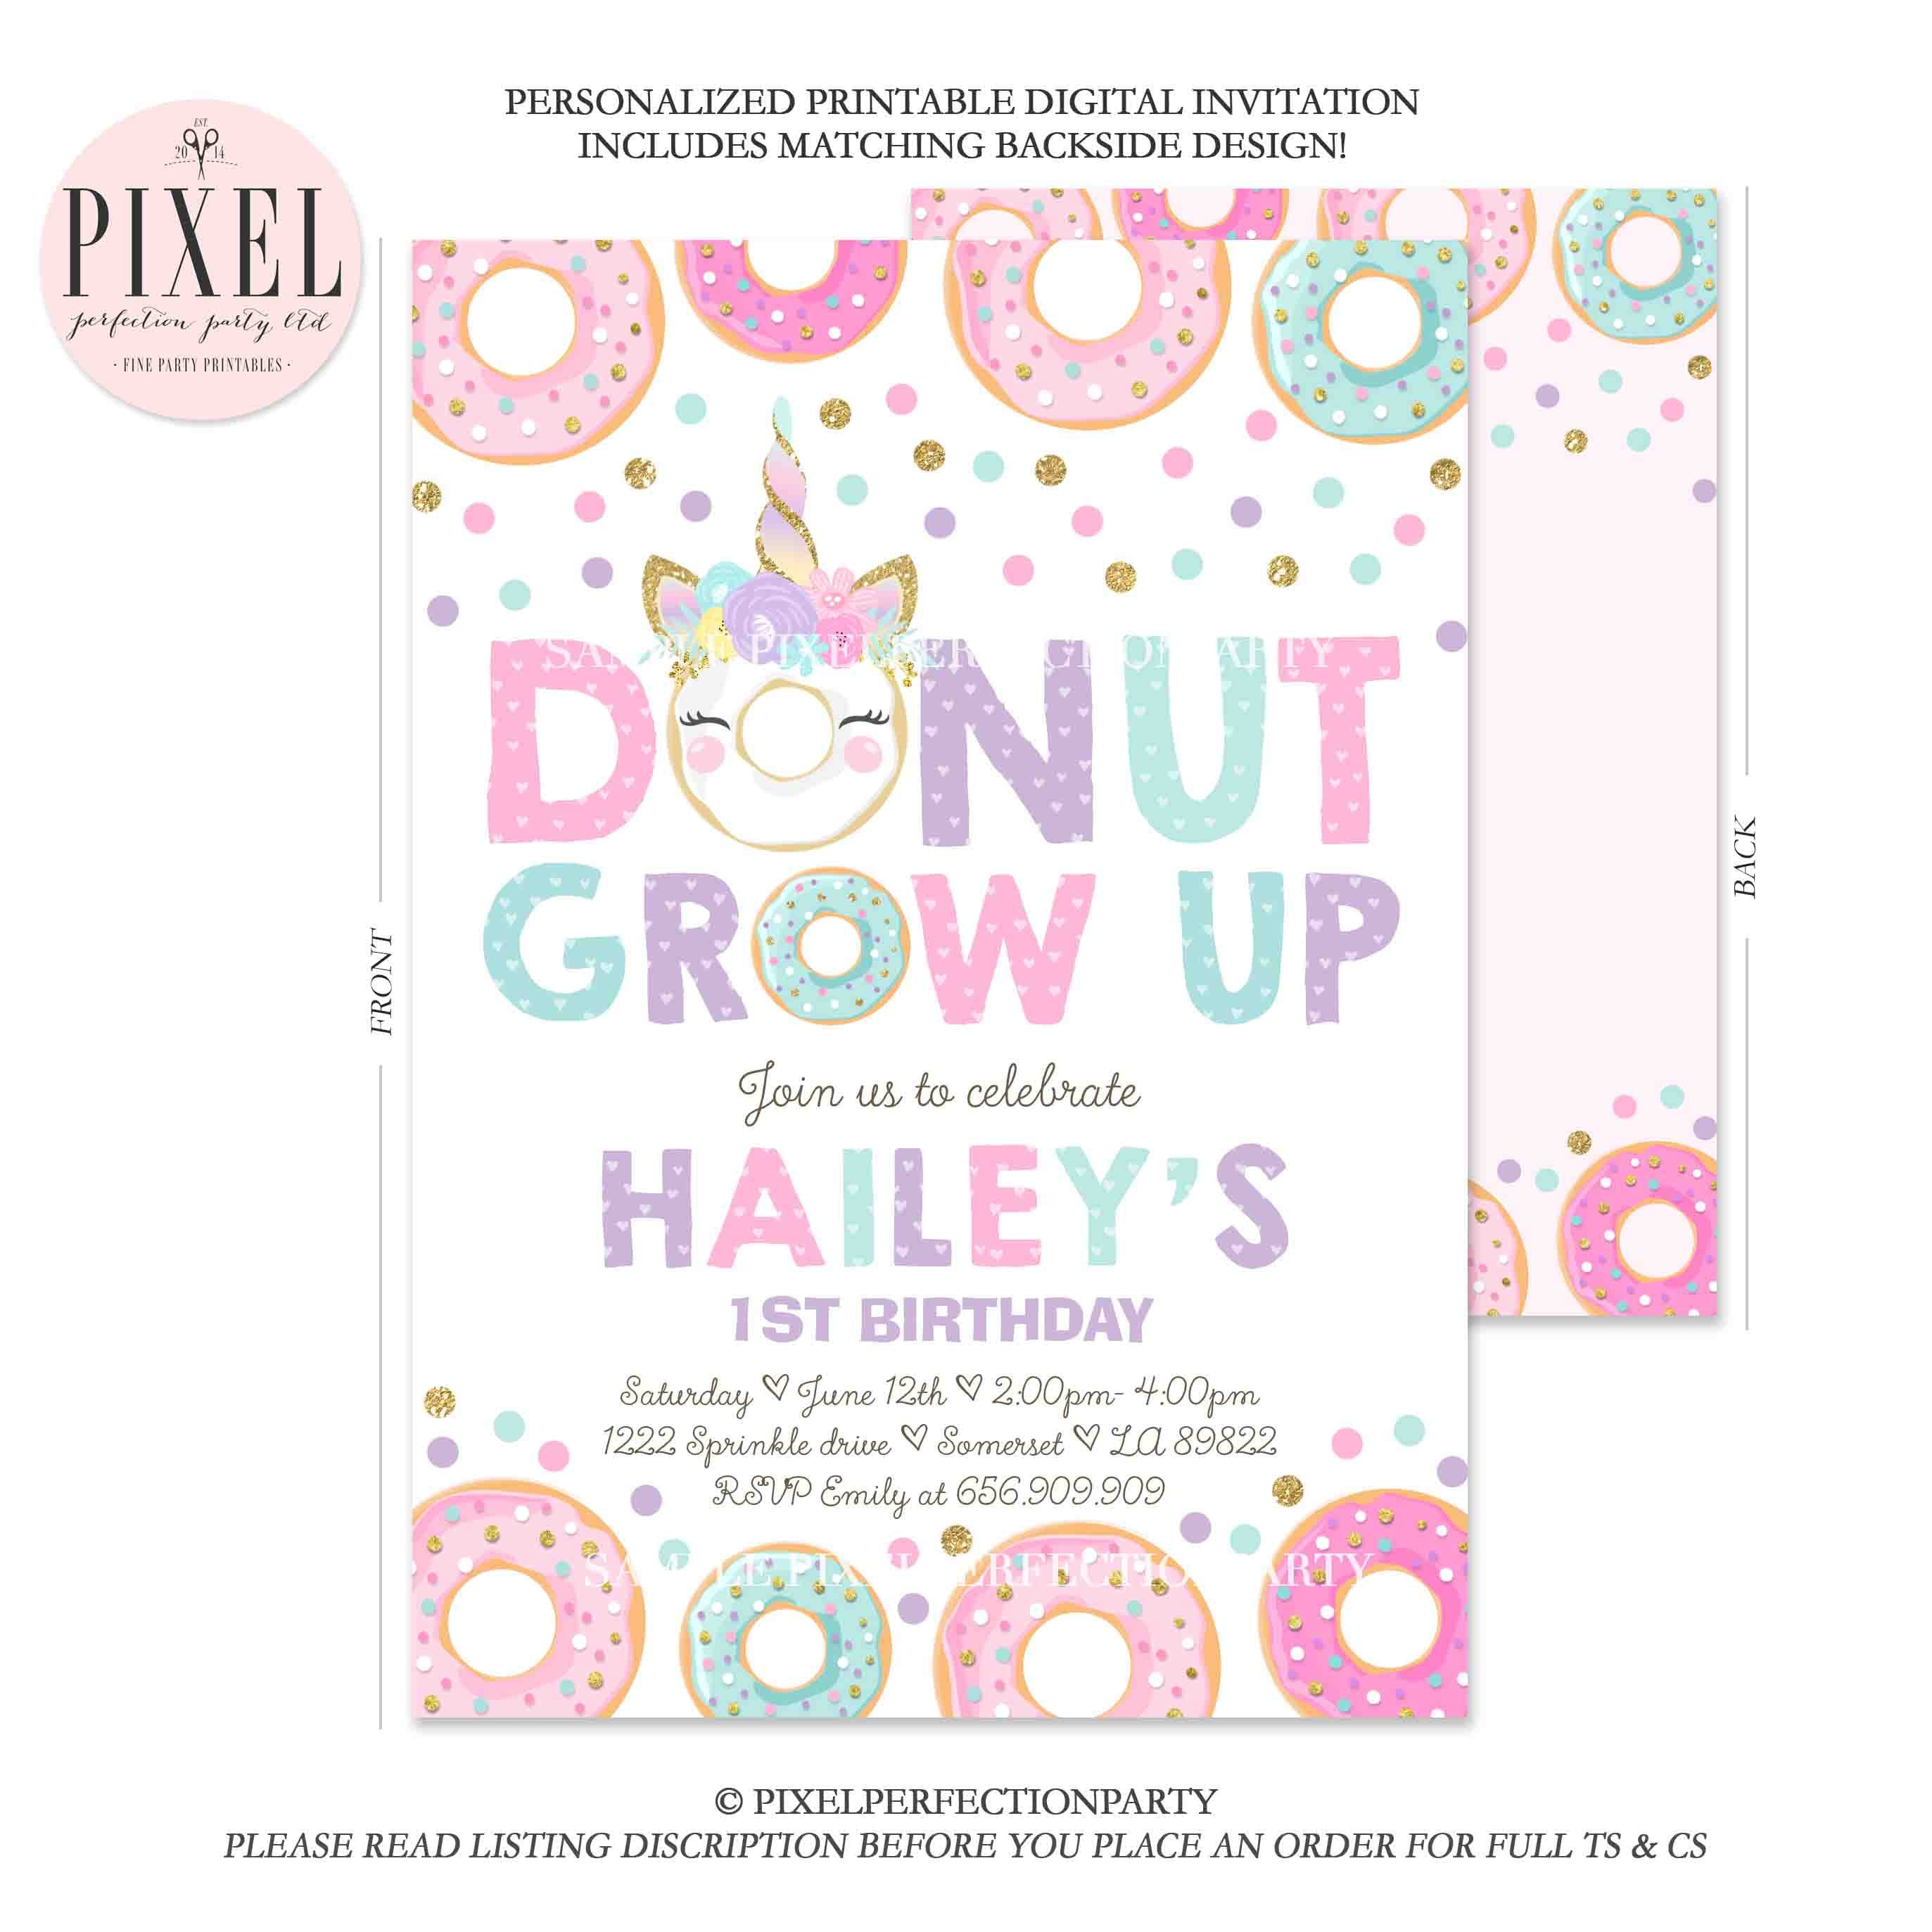 Donut Grow Up Birthday Invitation Unicorn And Etsy Salib Ring Holder Stand Smartphone 1st Party Stop Believing 6b